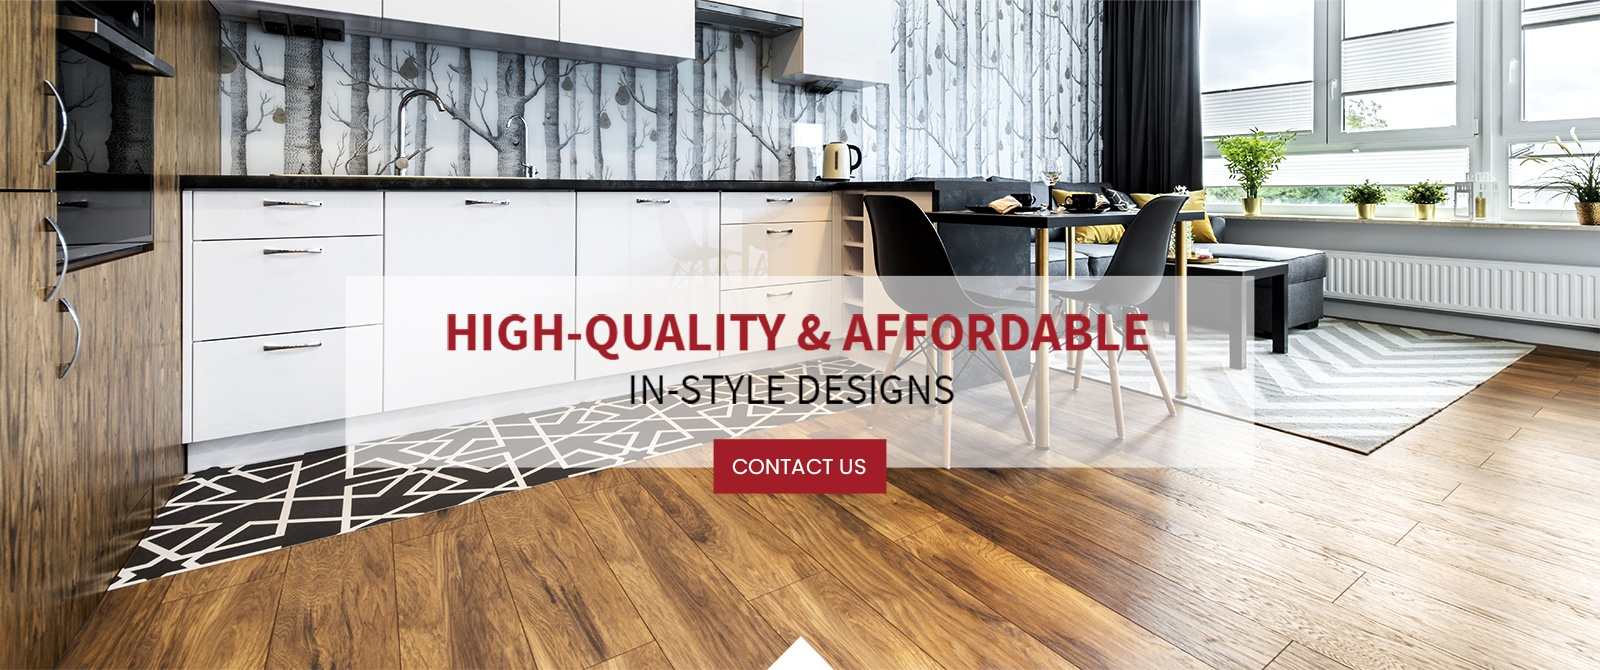 High Quality and Affordable In-Style Designs - Stittsville Flooring Inc.